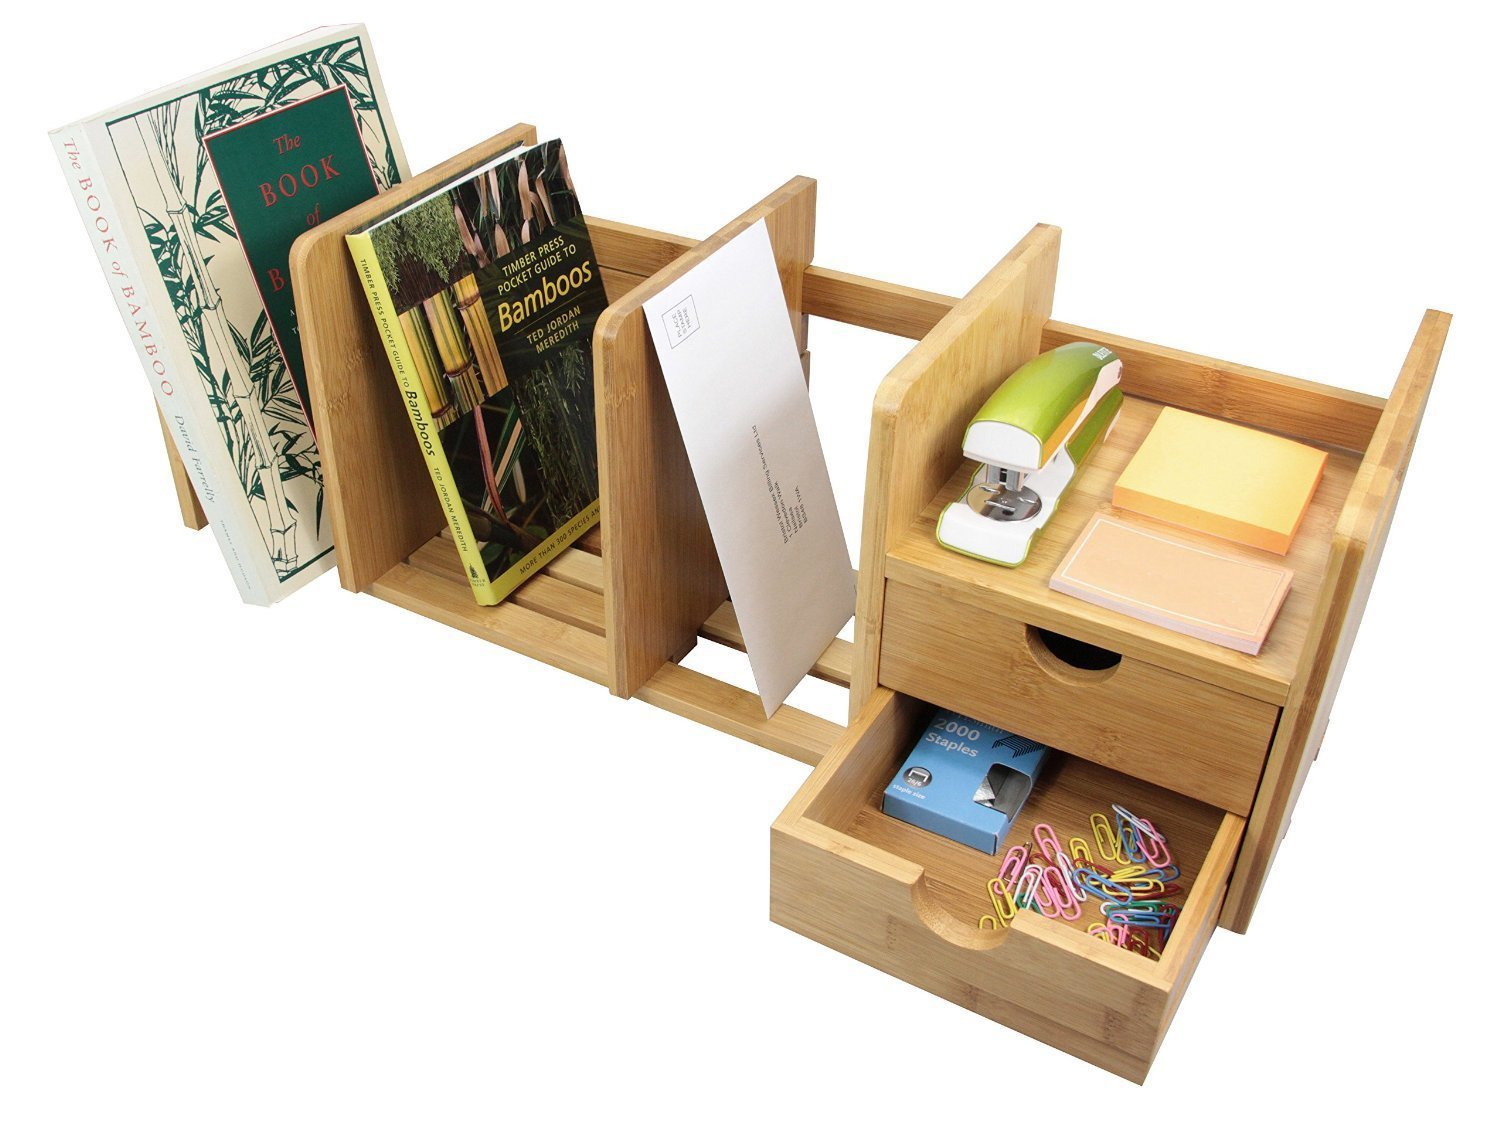 Natural Bamboo Desk Organizer with Extendable Storage and Two Drawers for Office and Home, Expandable Desk Tidy Bamboo Bookshelf by Balabella